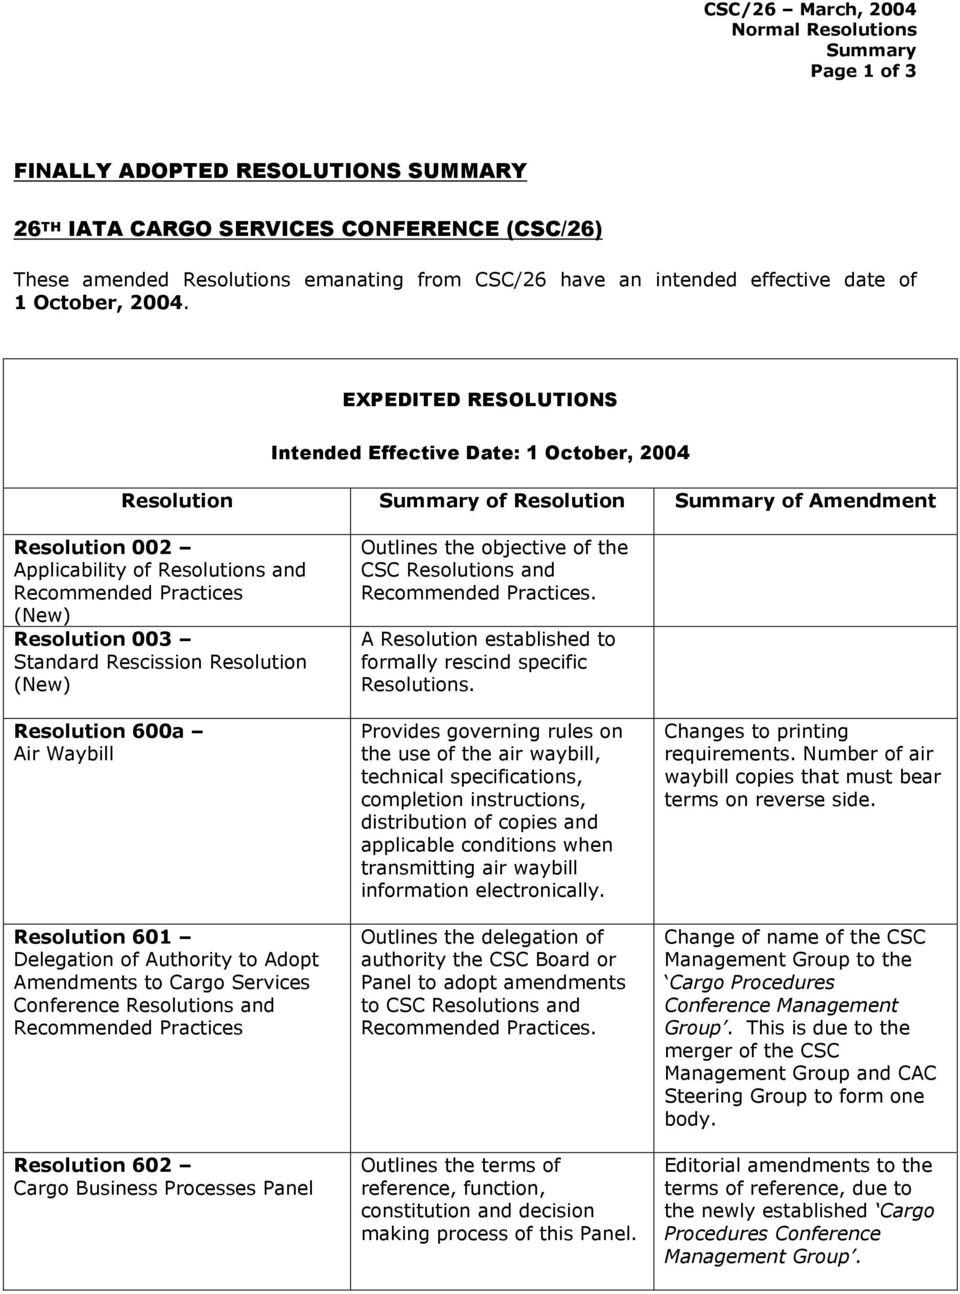 Resolution 003 Standard Rescission Resolution (New) Resolution 600a Air Waybill Resolution 601 Delegation of Authority to Adopt Amendments to Cargo Services Conference Resolutions and Recommended